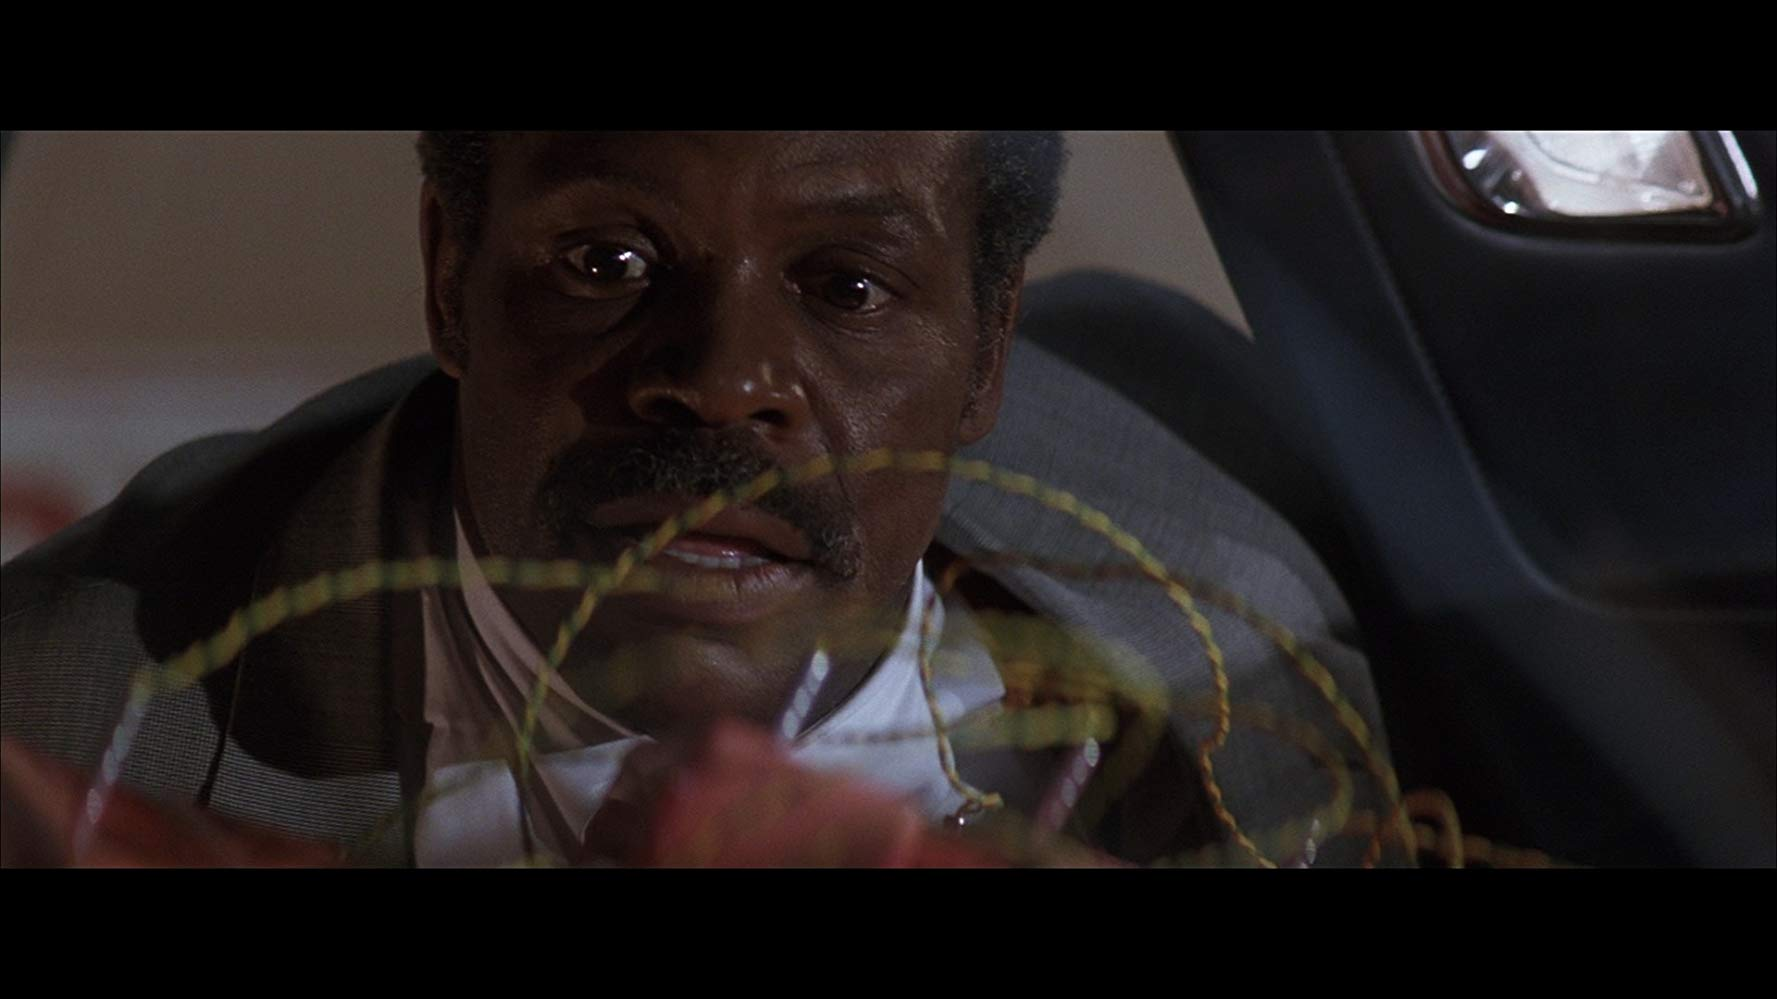 Danny Glover in Lethal Weapon